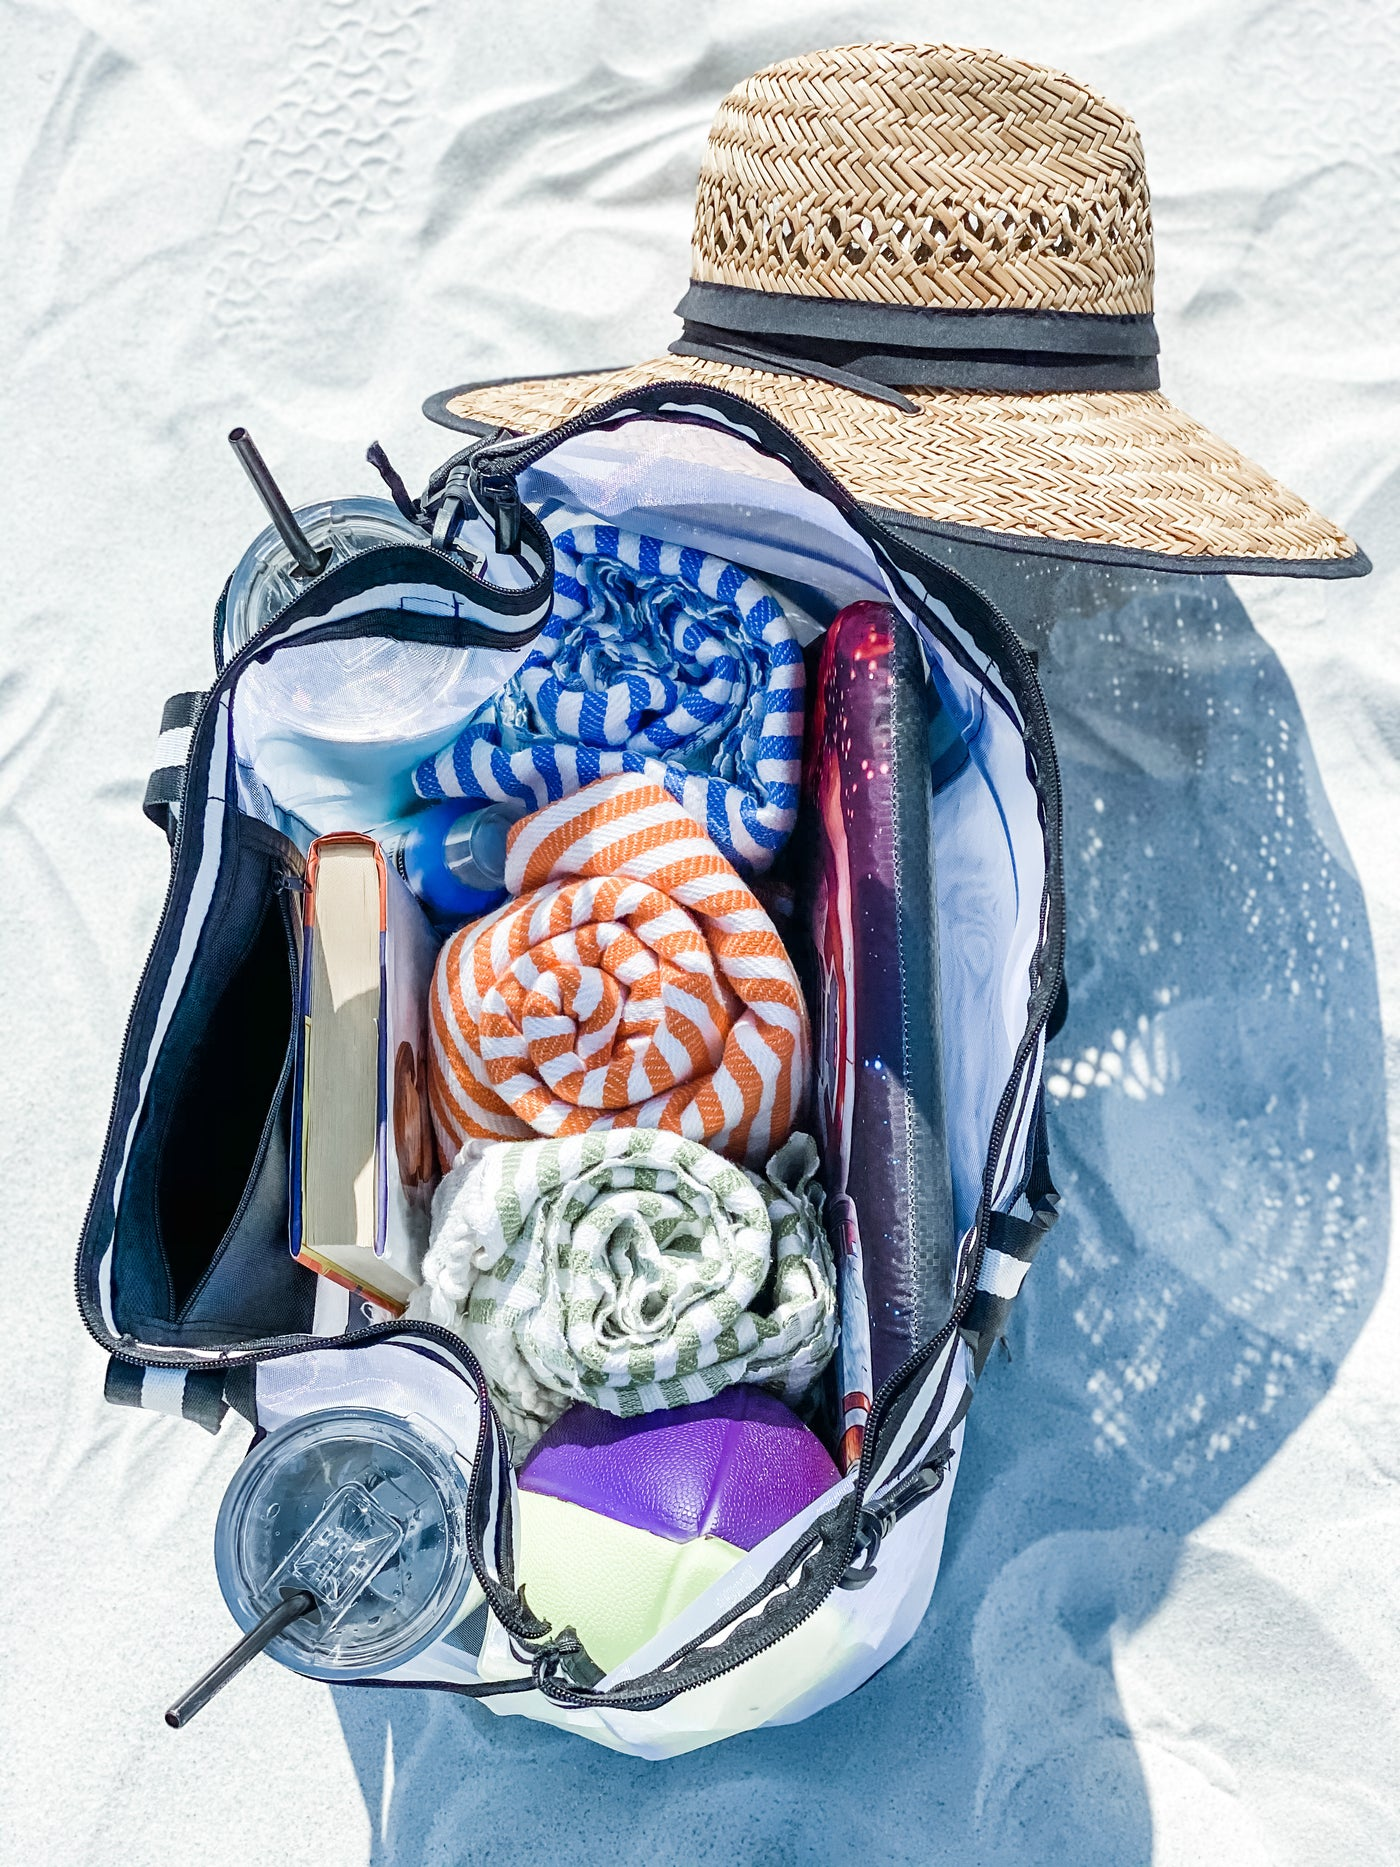 Pack up your beach gadgets in Vulken Beach Bag and start your wonderful beach day